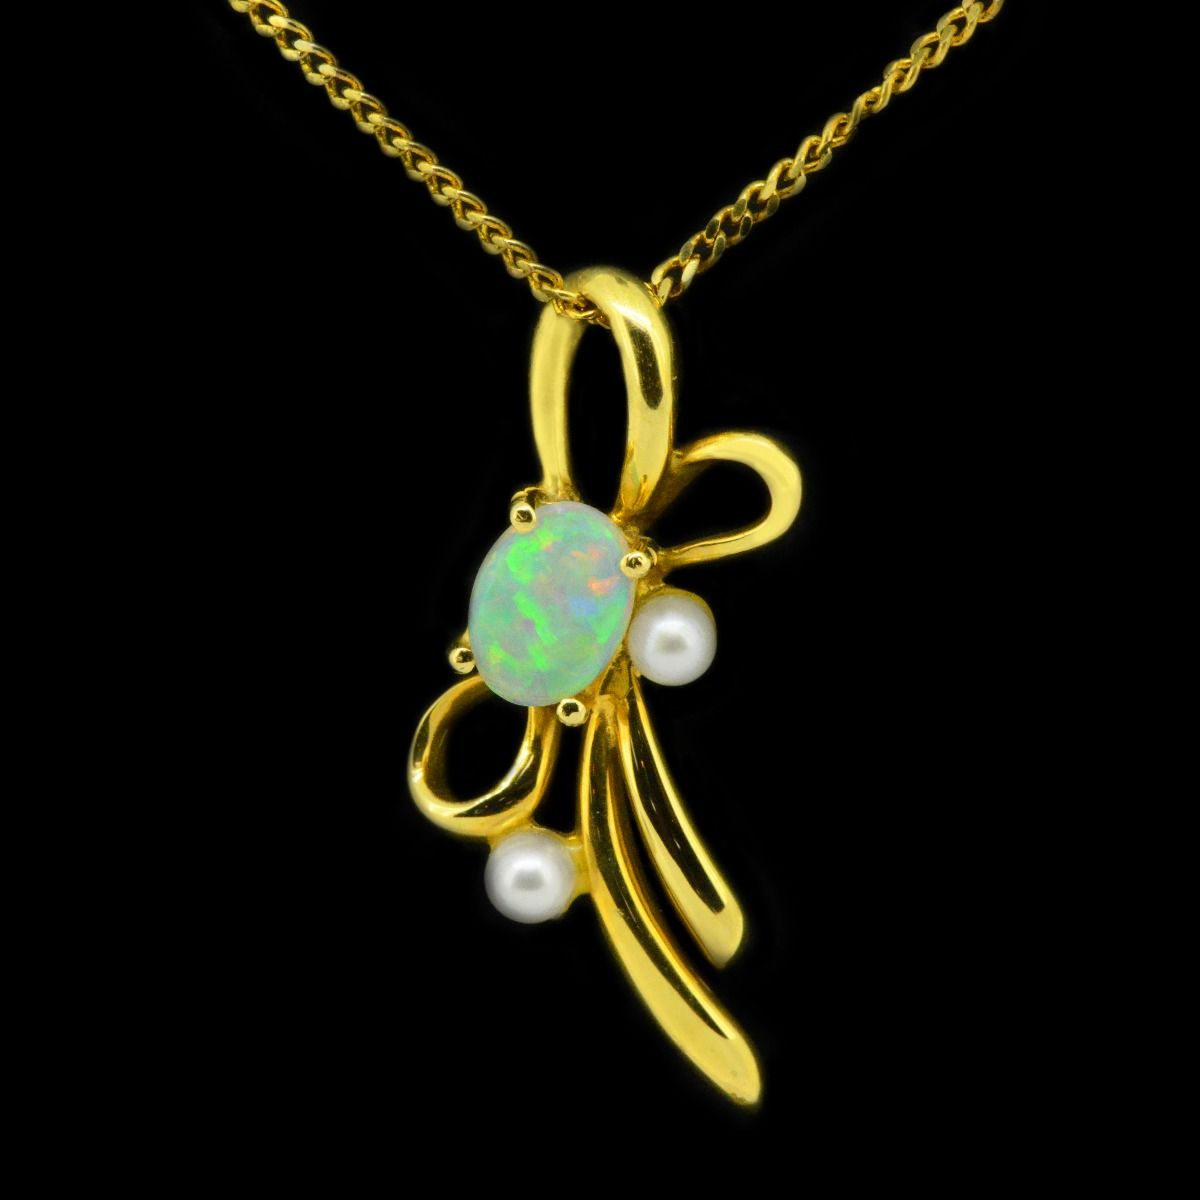 18ct Yellow Gold Solid Crystal Opal with Pearl Accents